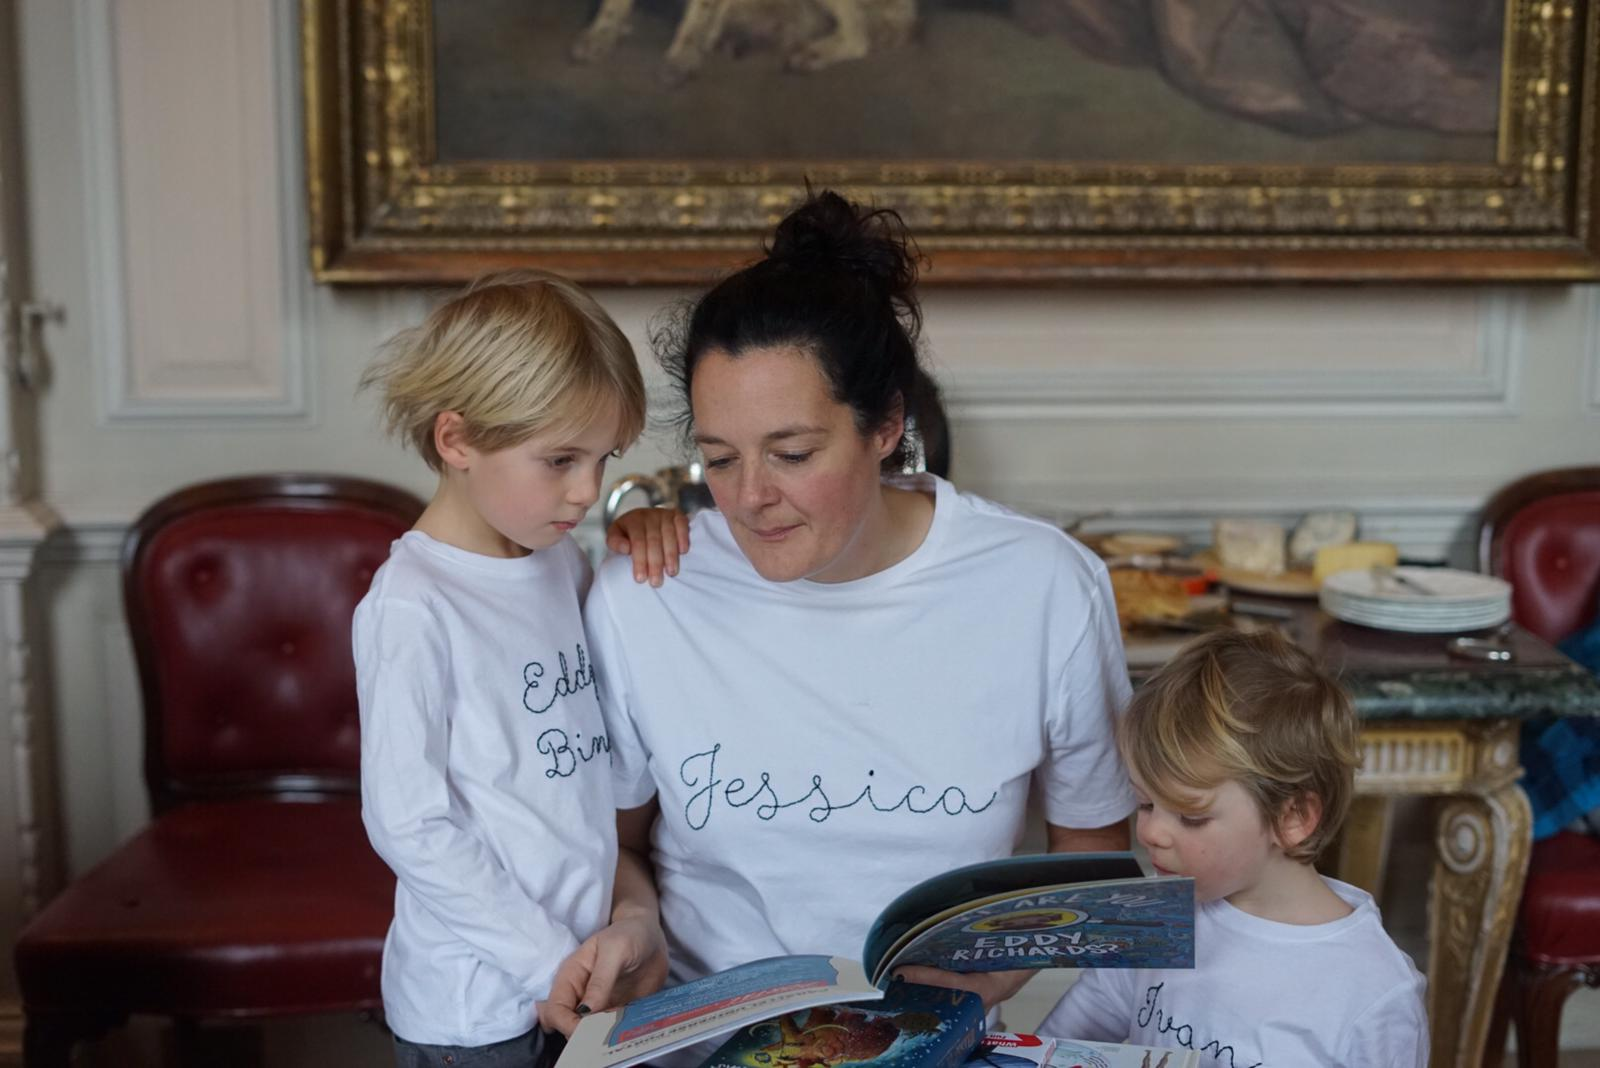 T-SHIRT EMBROIDERY - Make a personalized t-shirt for you or your beloved ones. Learn simple embroidery stitches and customize your own clothes. Book your private group session by emailing us at info@studiocruz.co.uk.